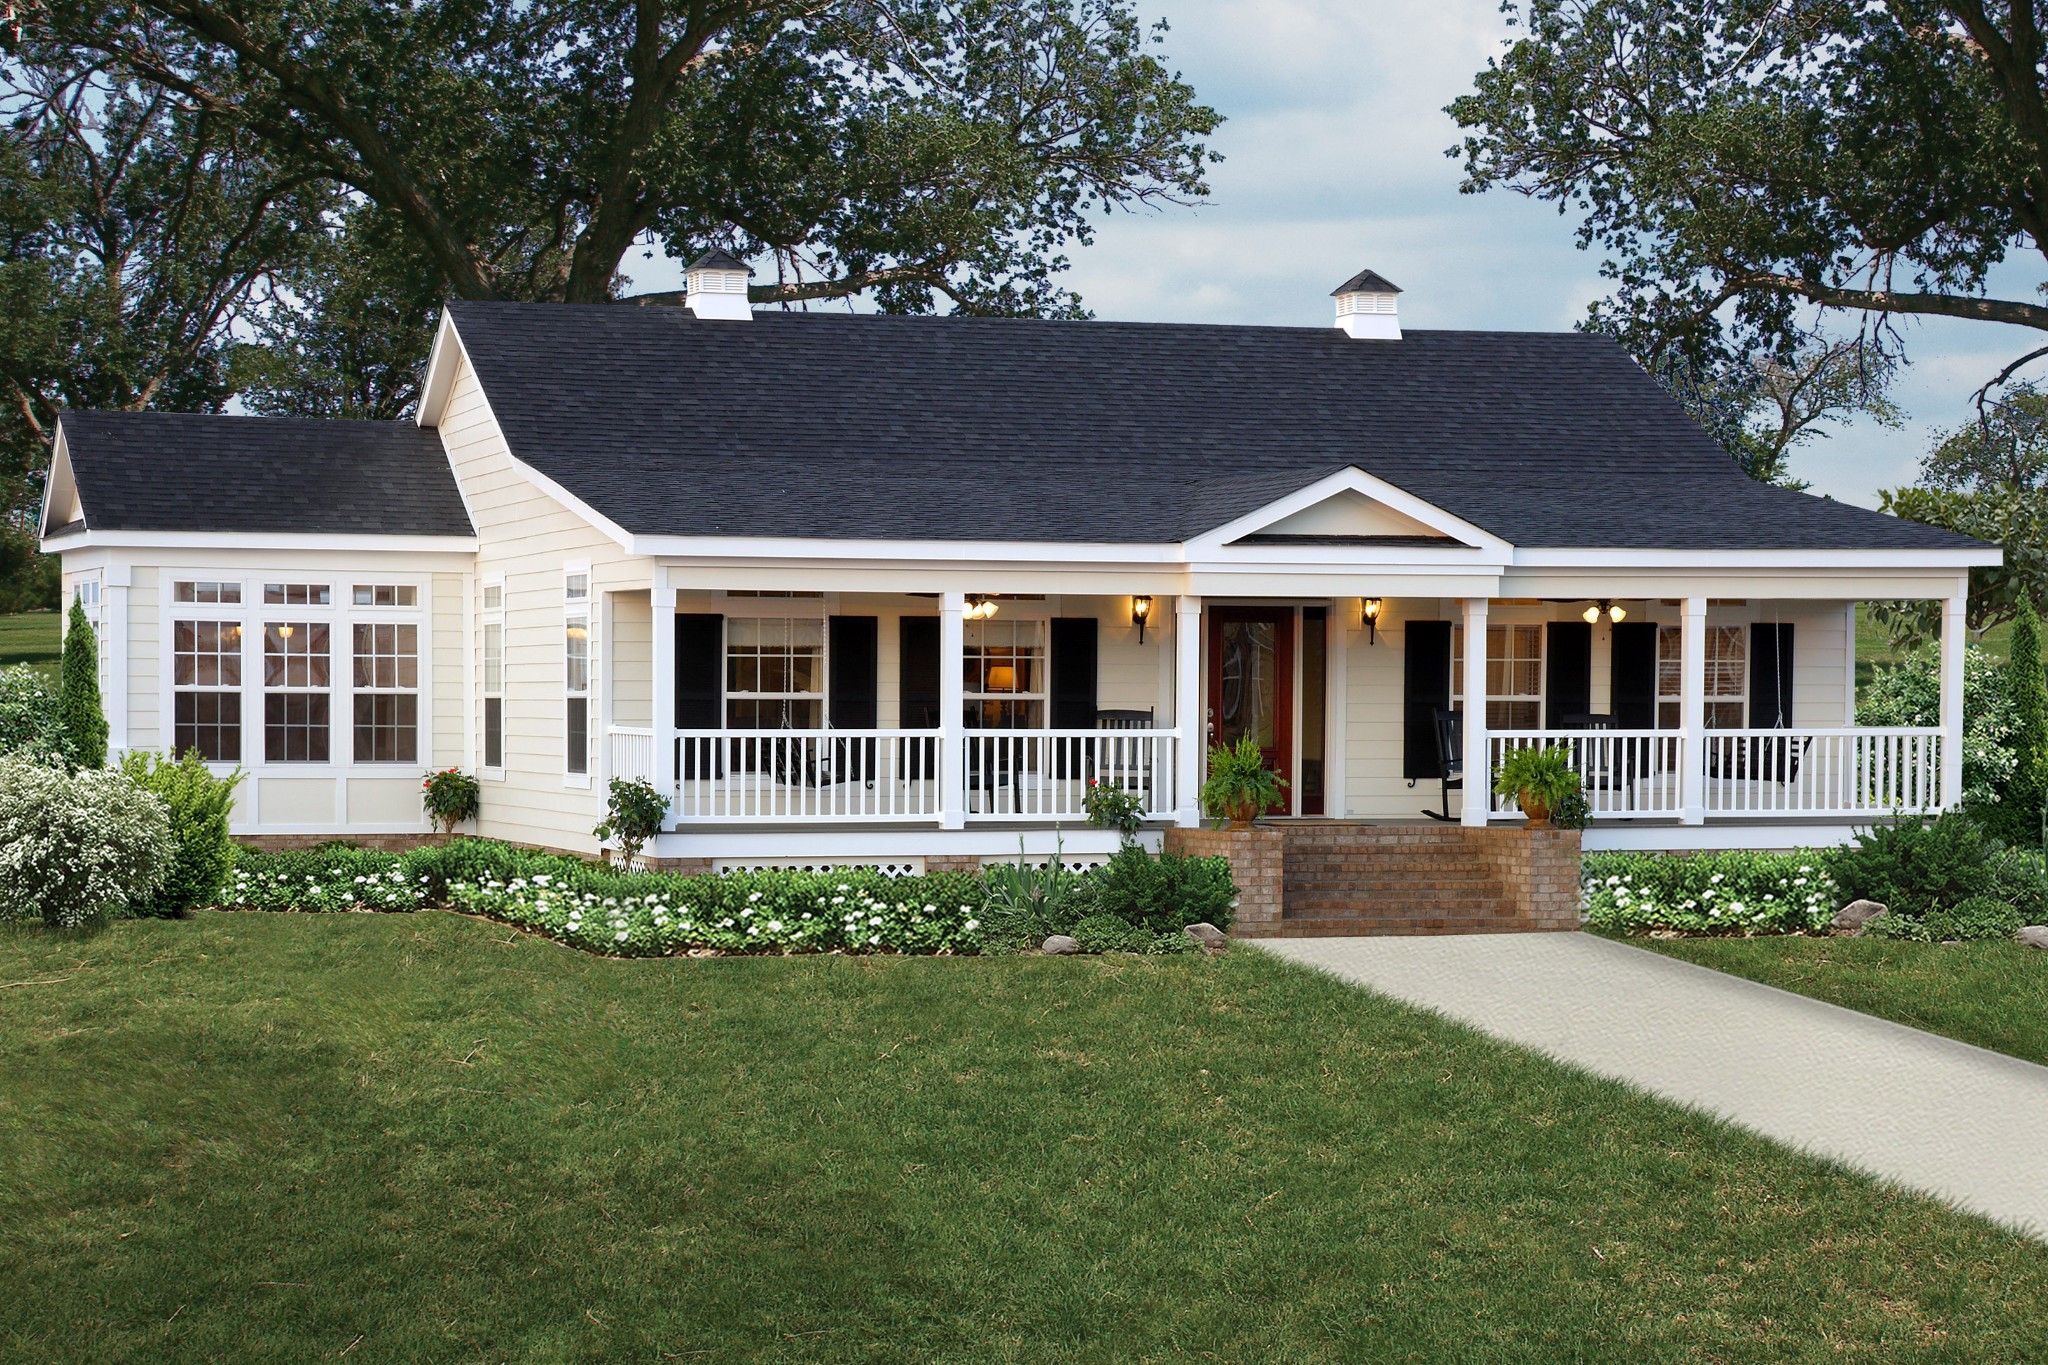 4 Classic American Manufactured And Modular Home Styles | Clayton Blog